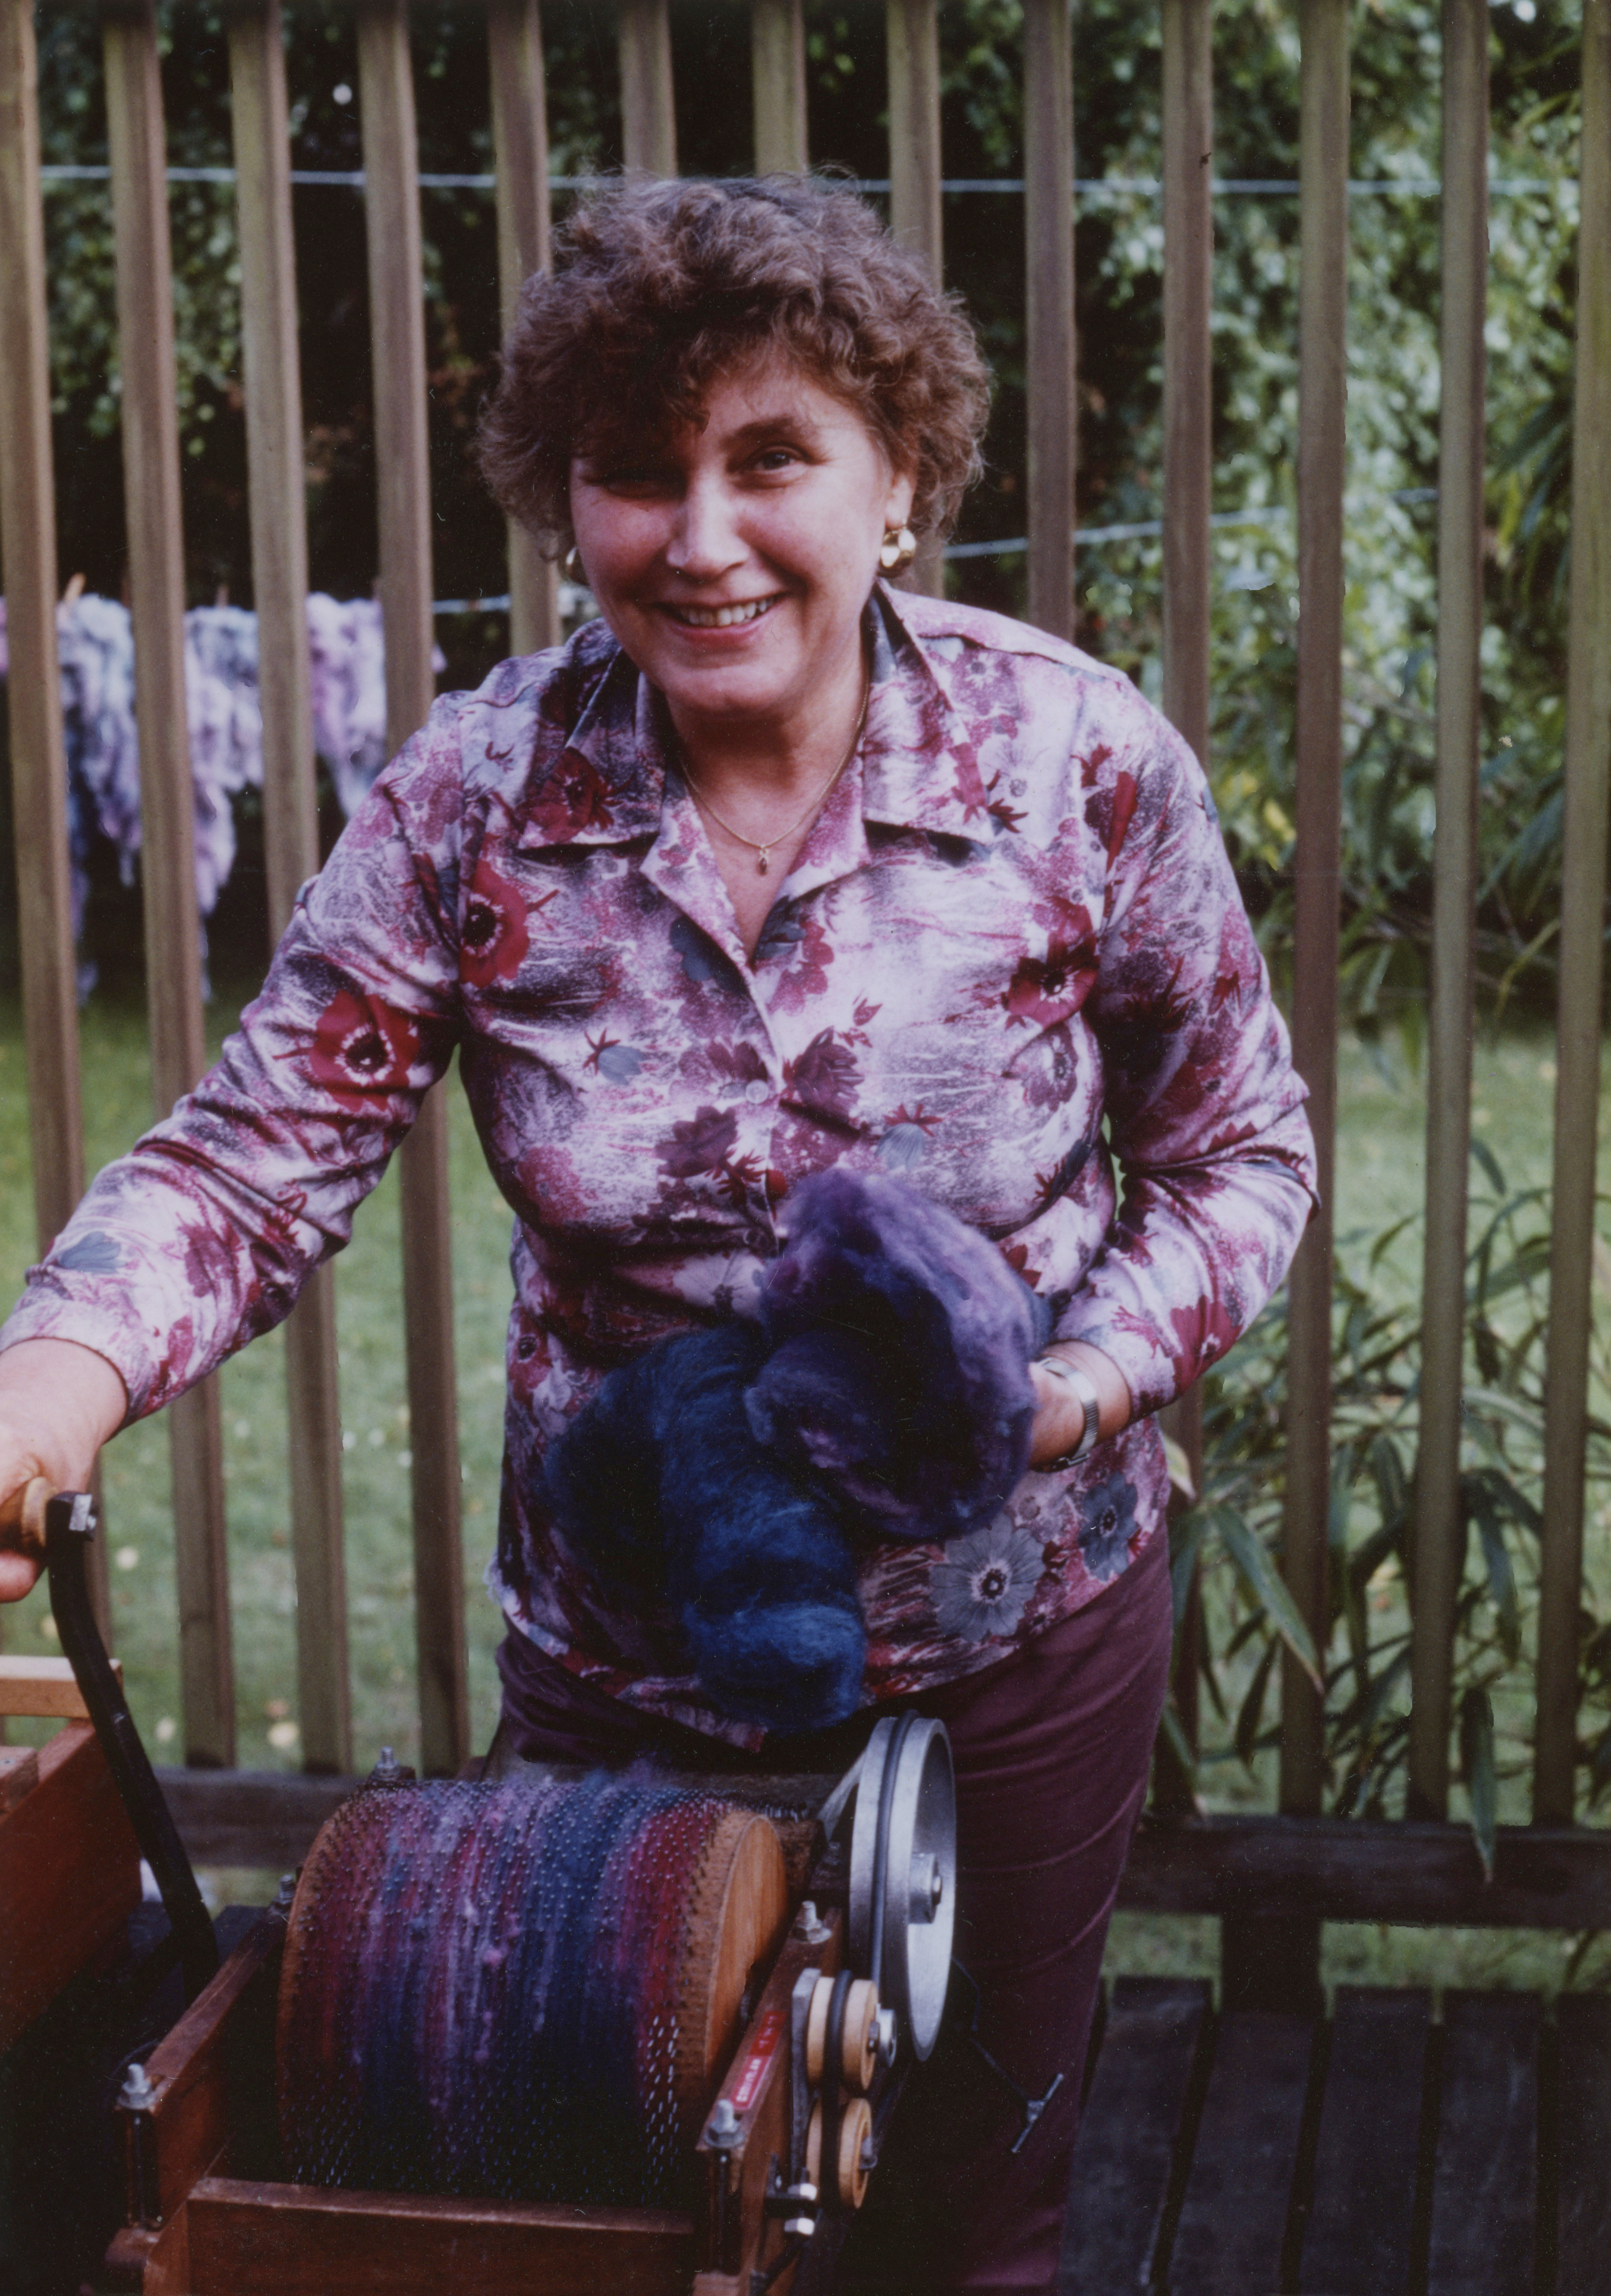 Sheila at home, happily engaged in hand-spinning wool